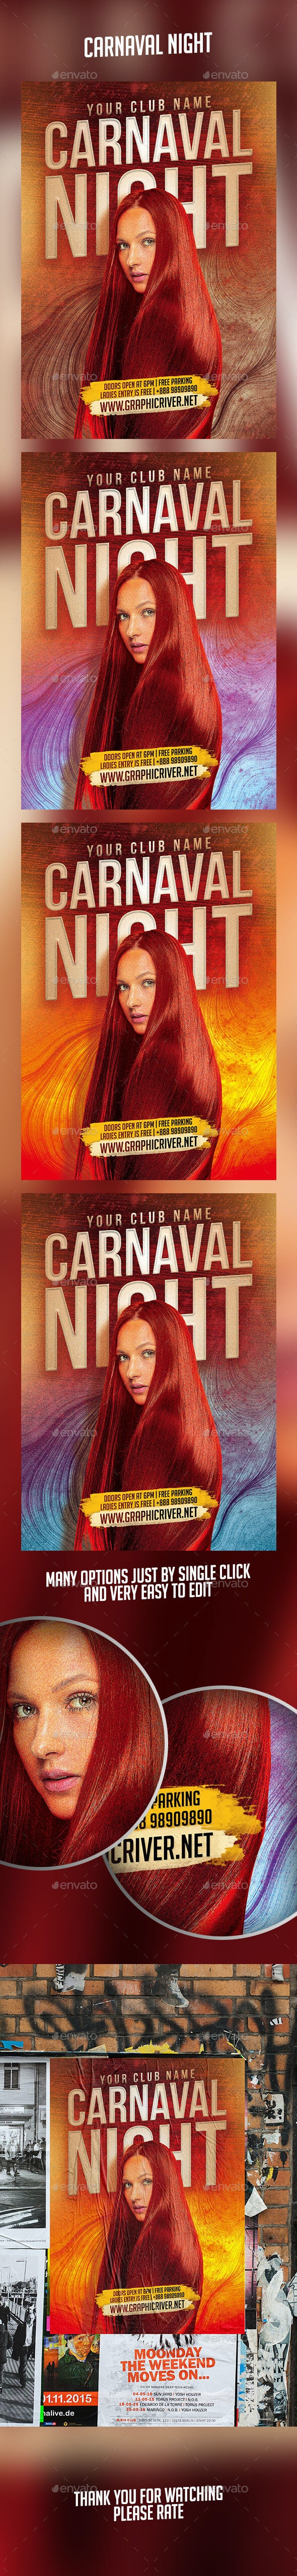 Carnaval Night Flyer - Events Flyers